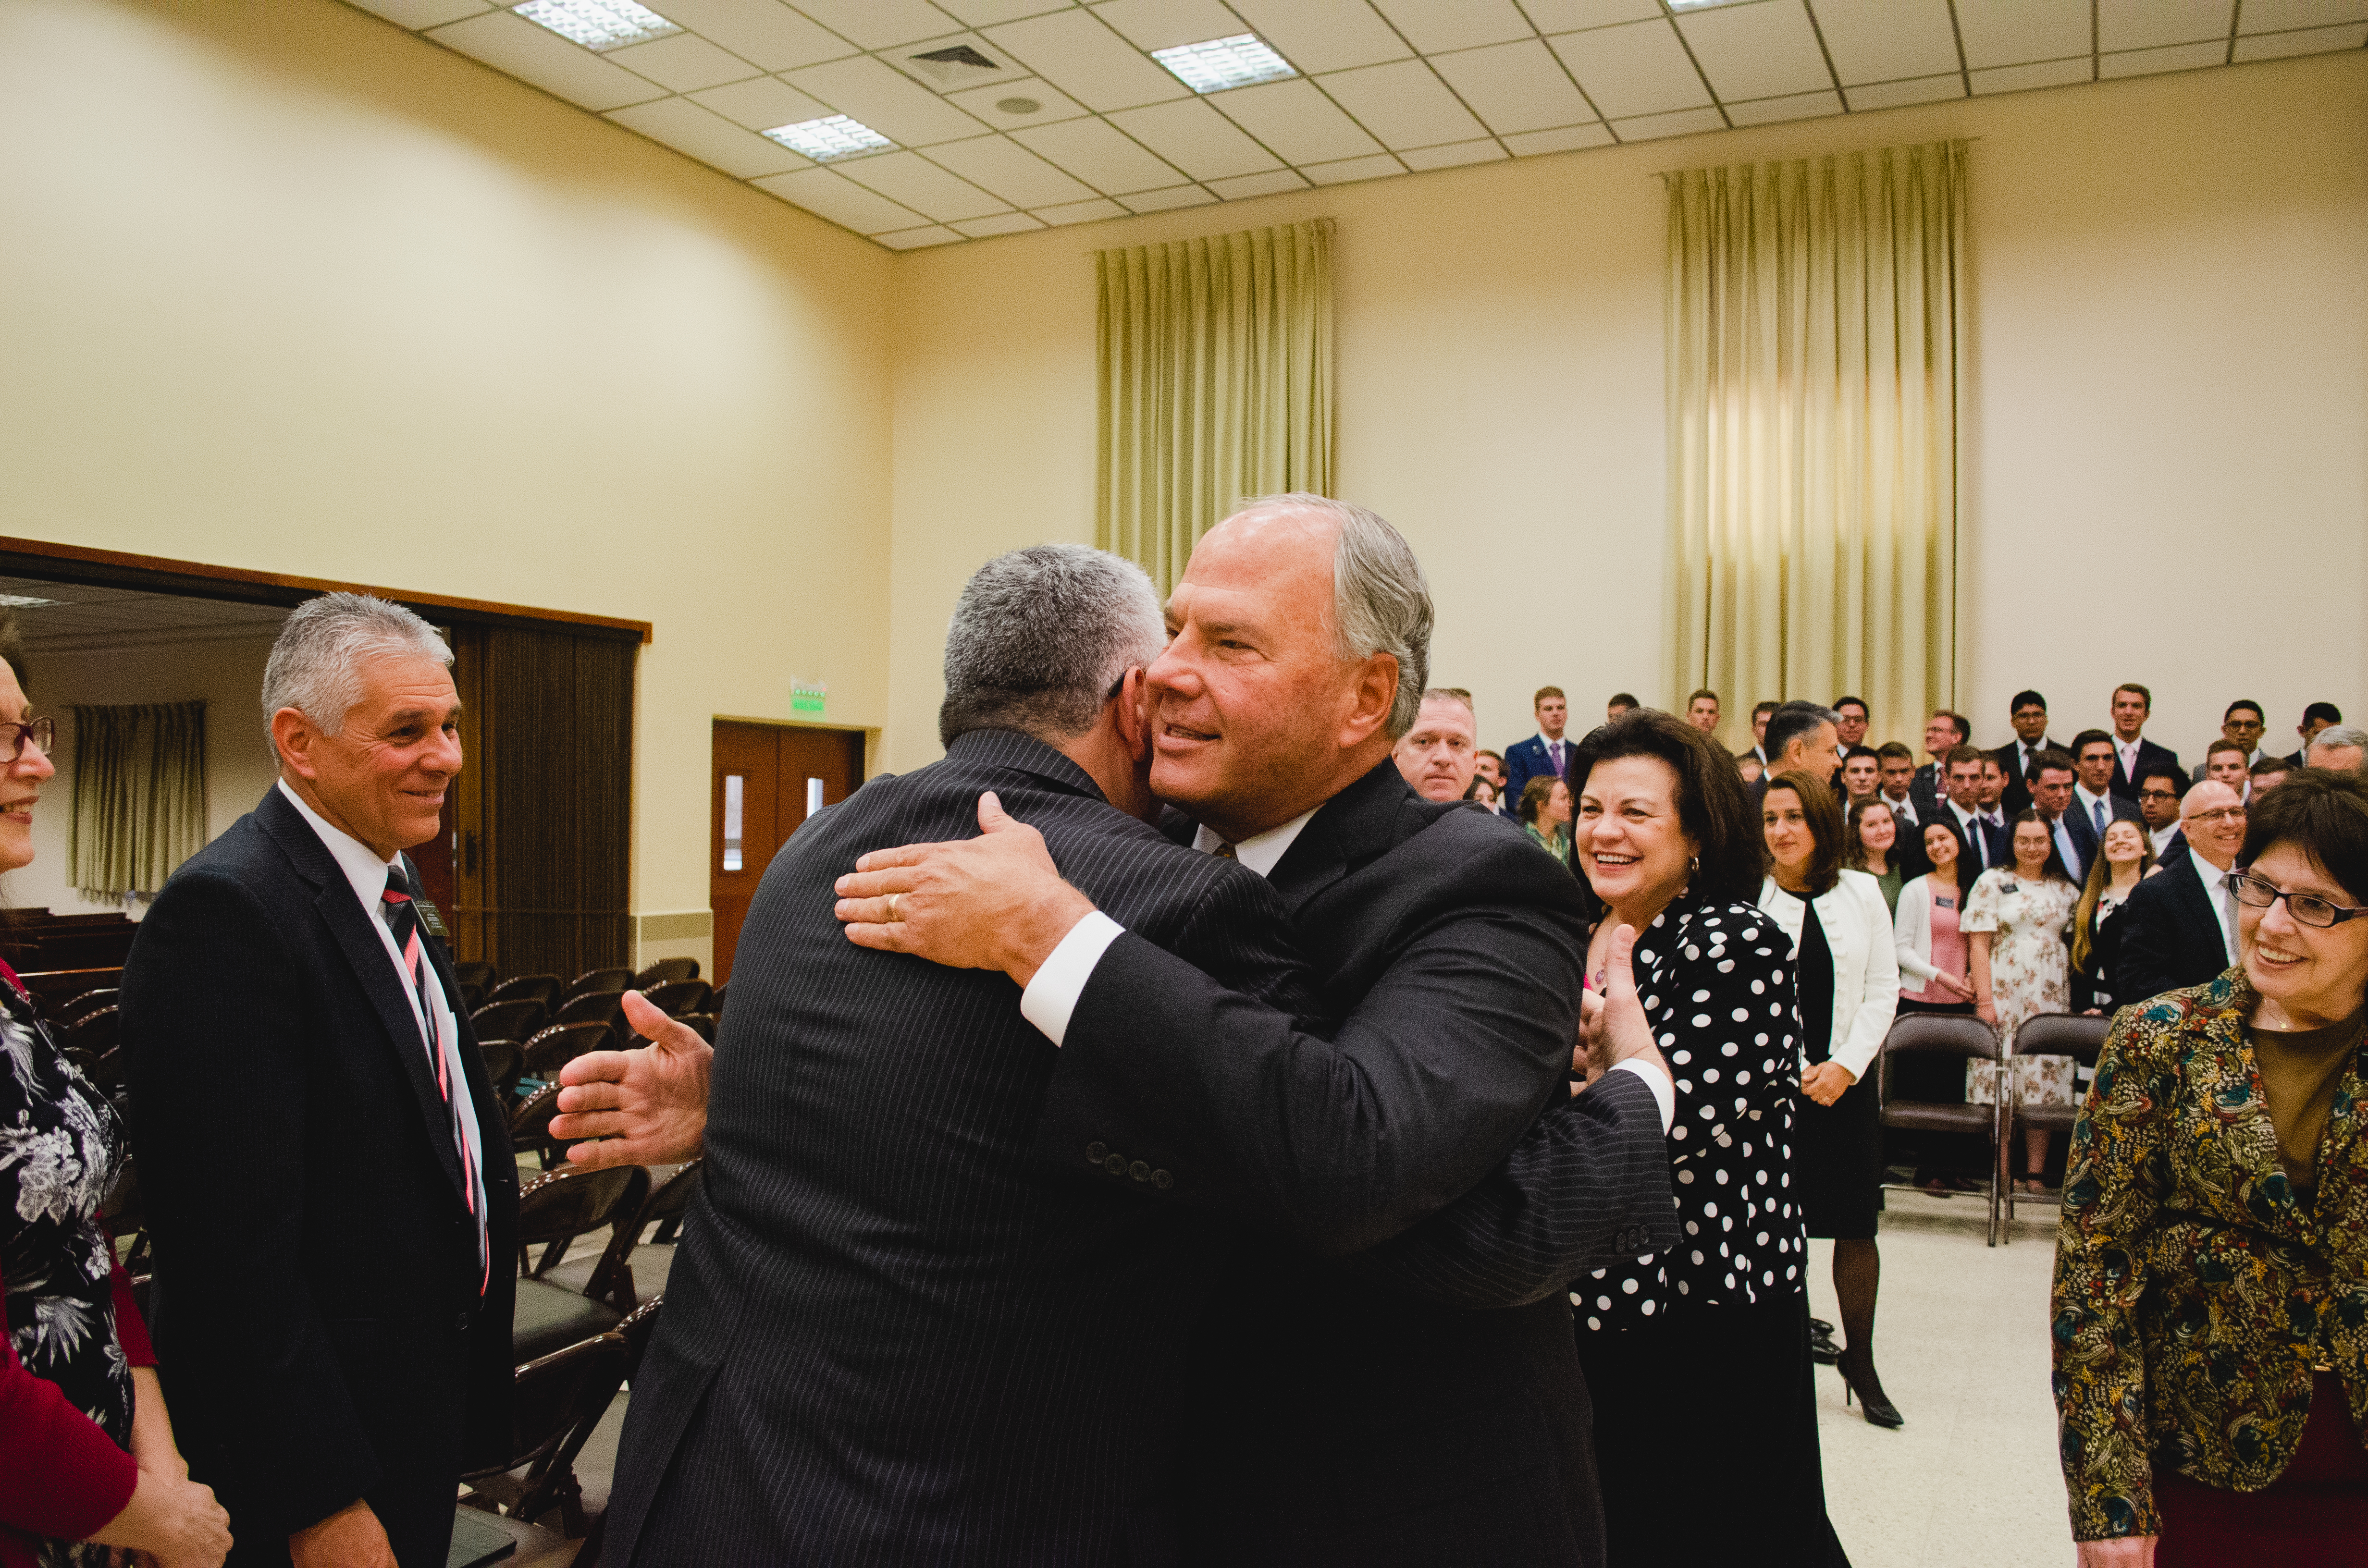 Elder Ronald A. Rasband of the Quorum of the Twelve Apostles greets missionaries and leaders during his late August and early September 2018 trip to the South America South Area.